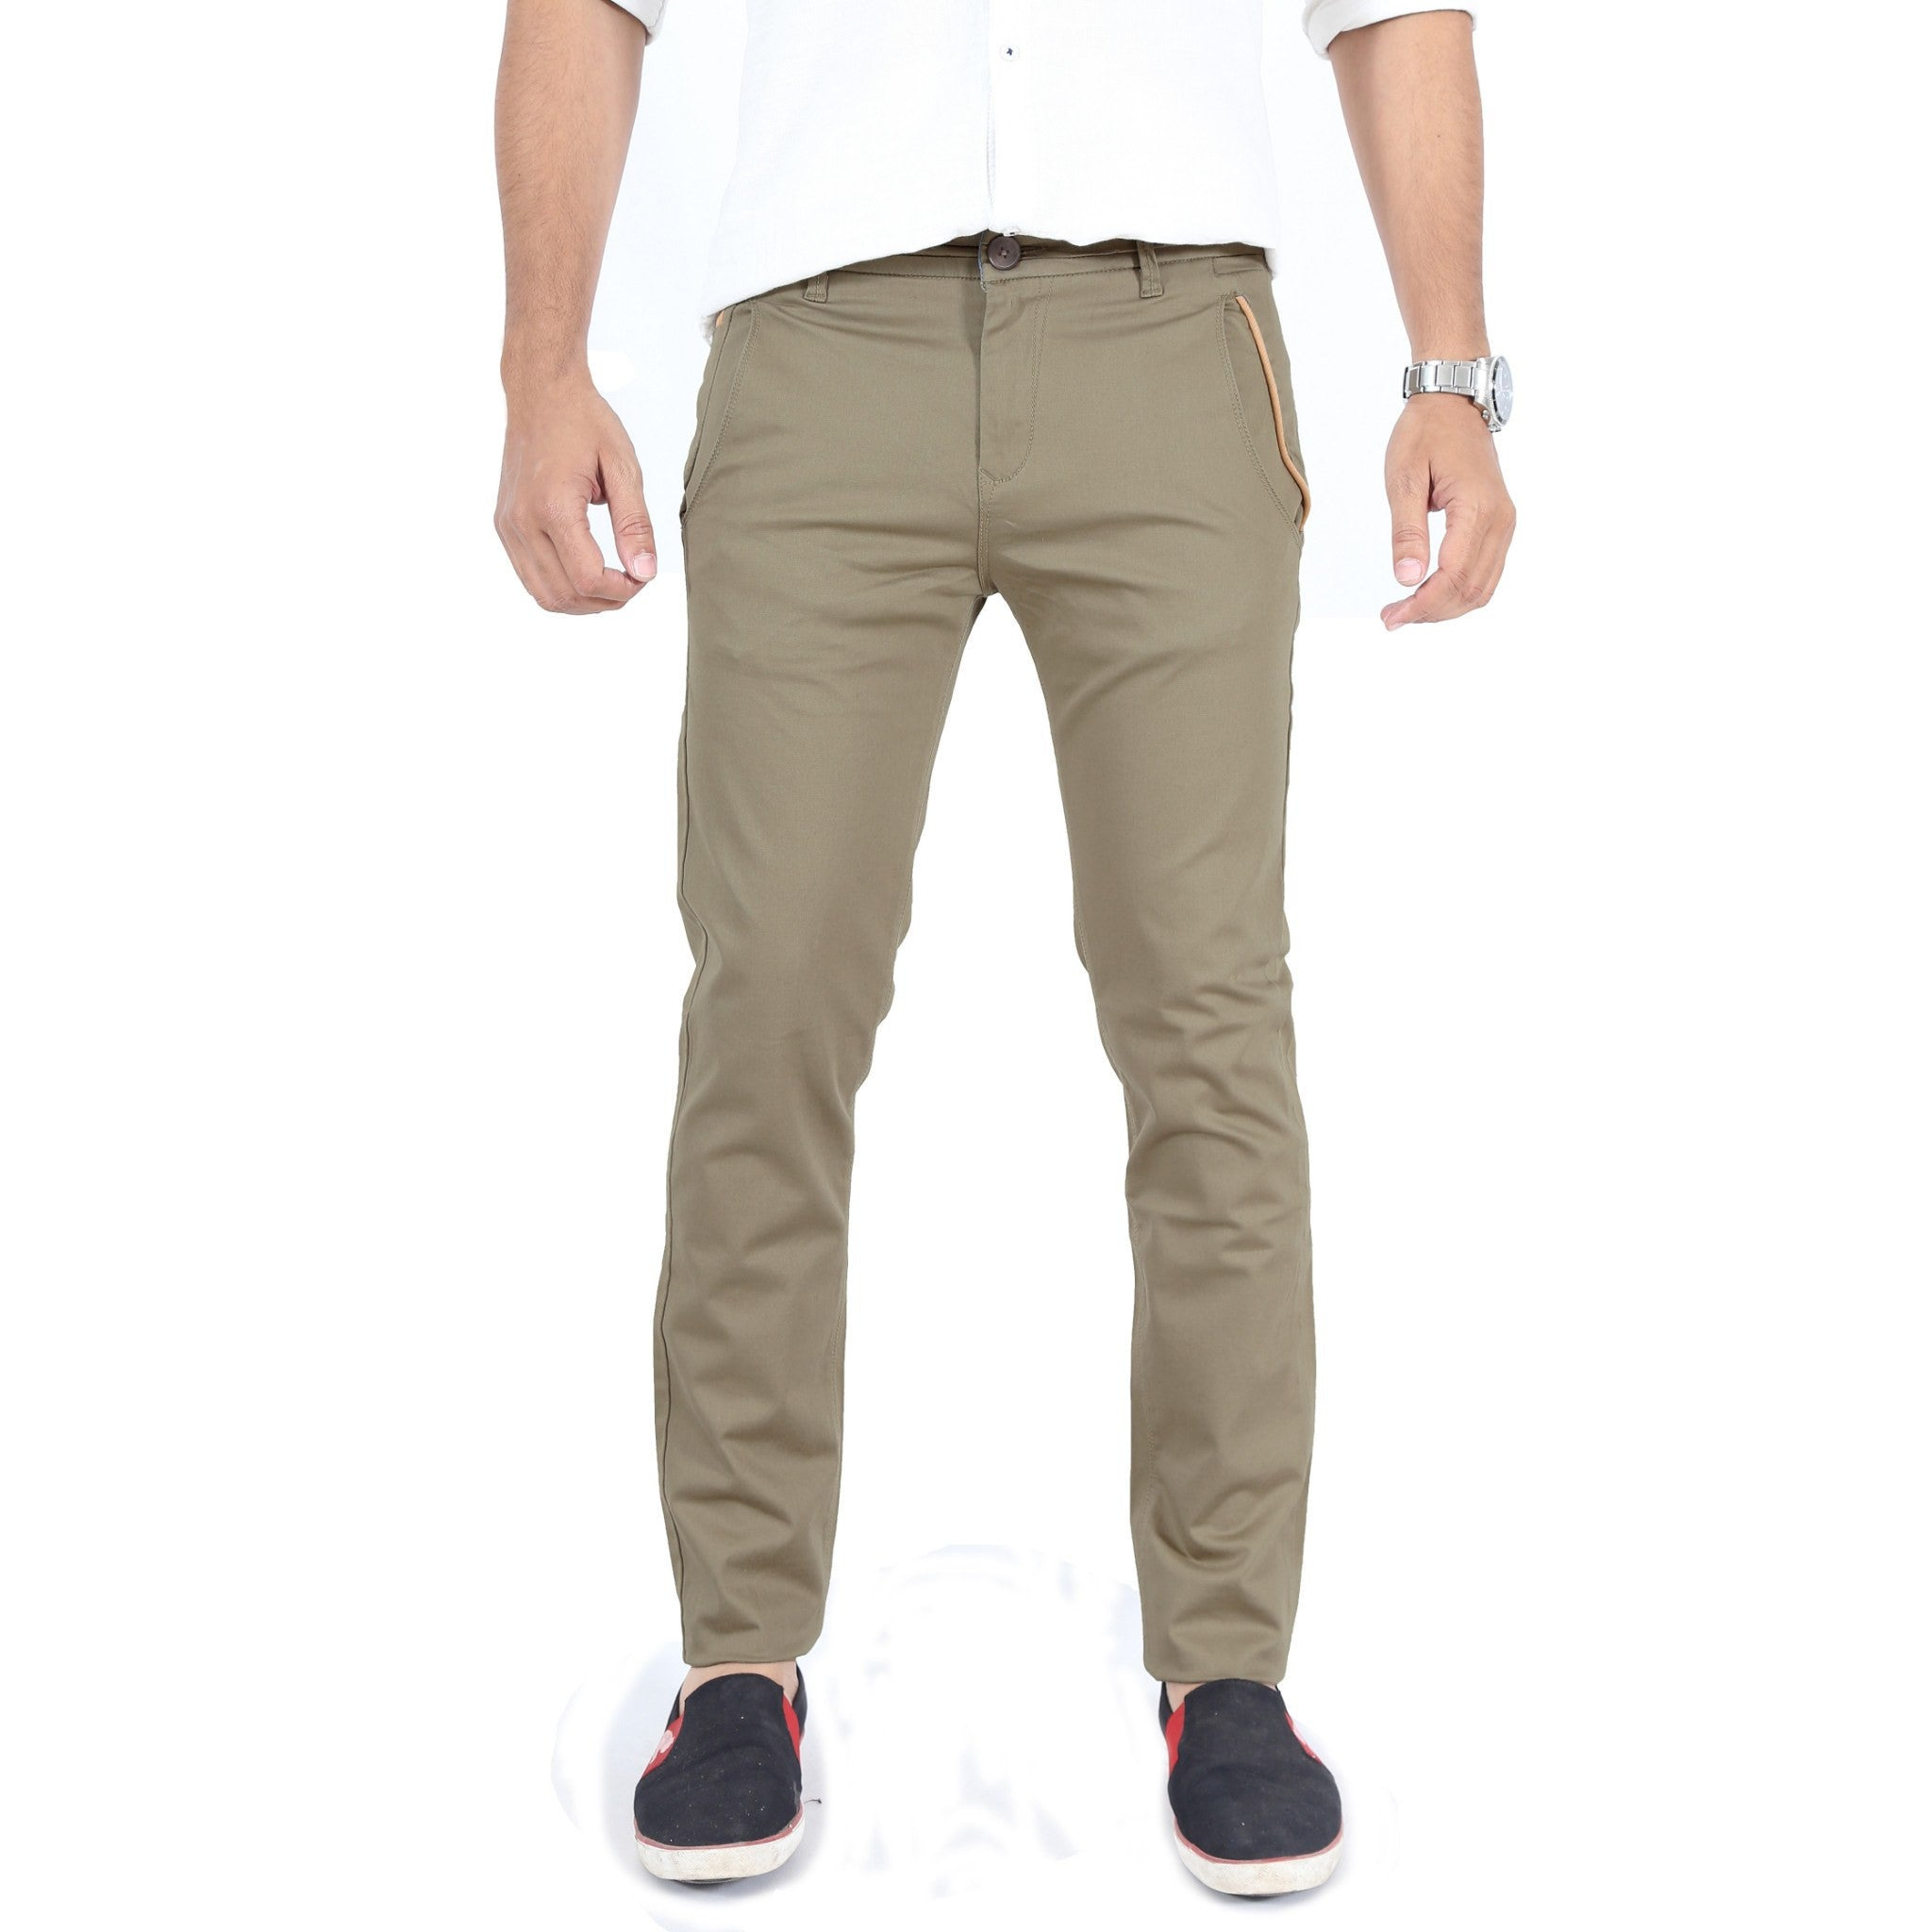 Khaki Gray Cotton Twill Elastene Trouser front view